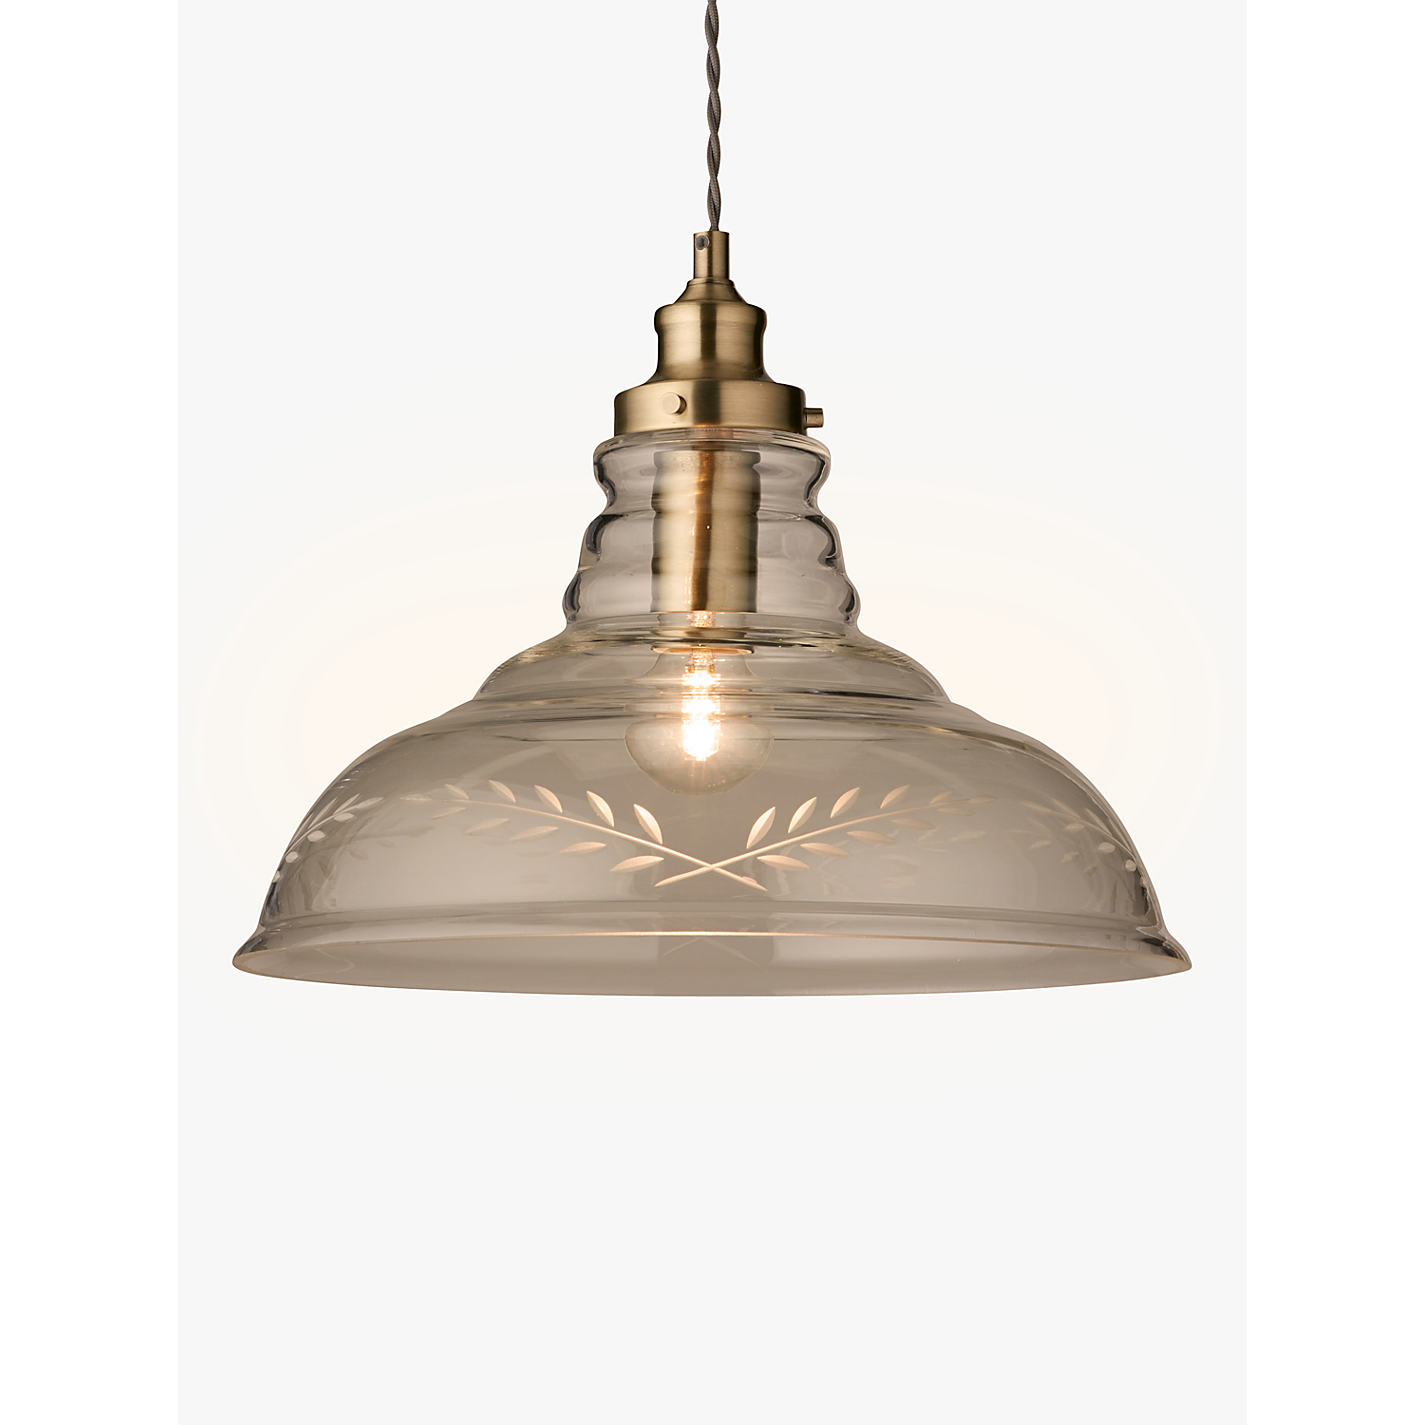 Buy john lewis hadley etched glass pendant ceiling light clear buy john lewis hadley etched glass pendant ceiling light clearantique brass online at aloadofball Gallery